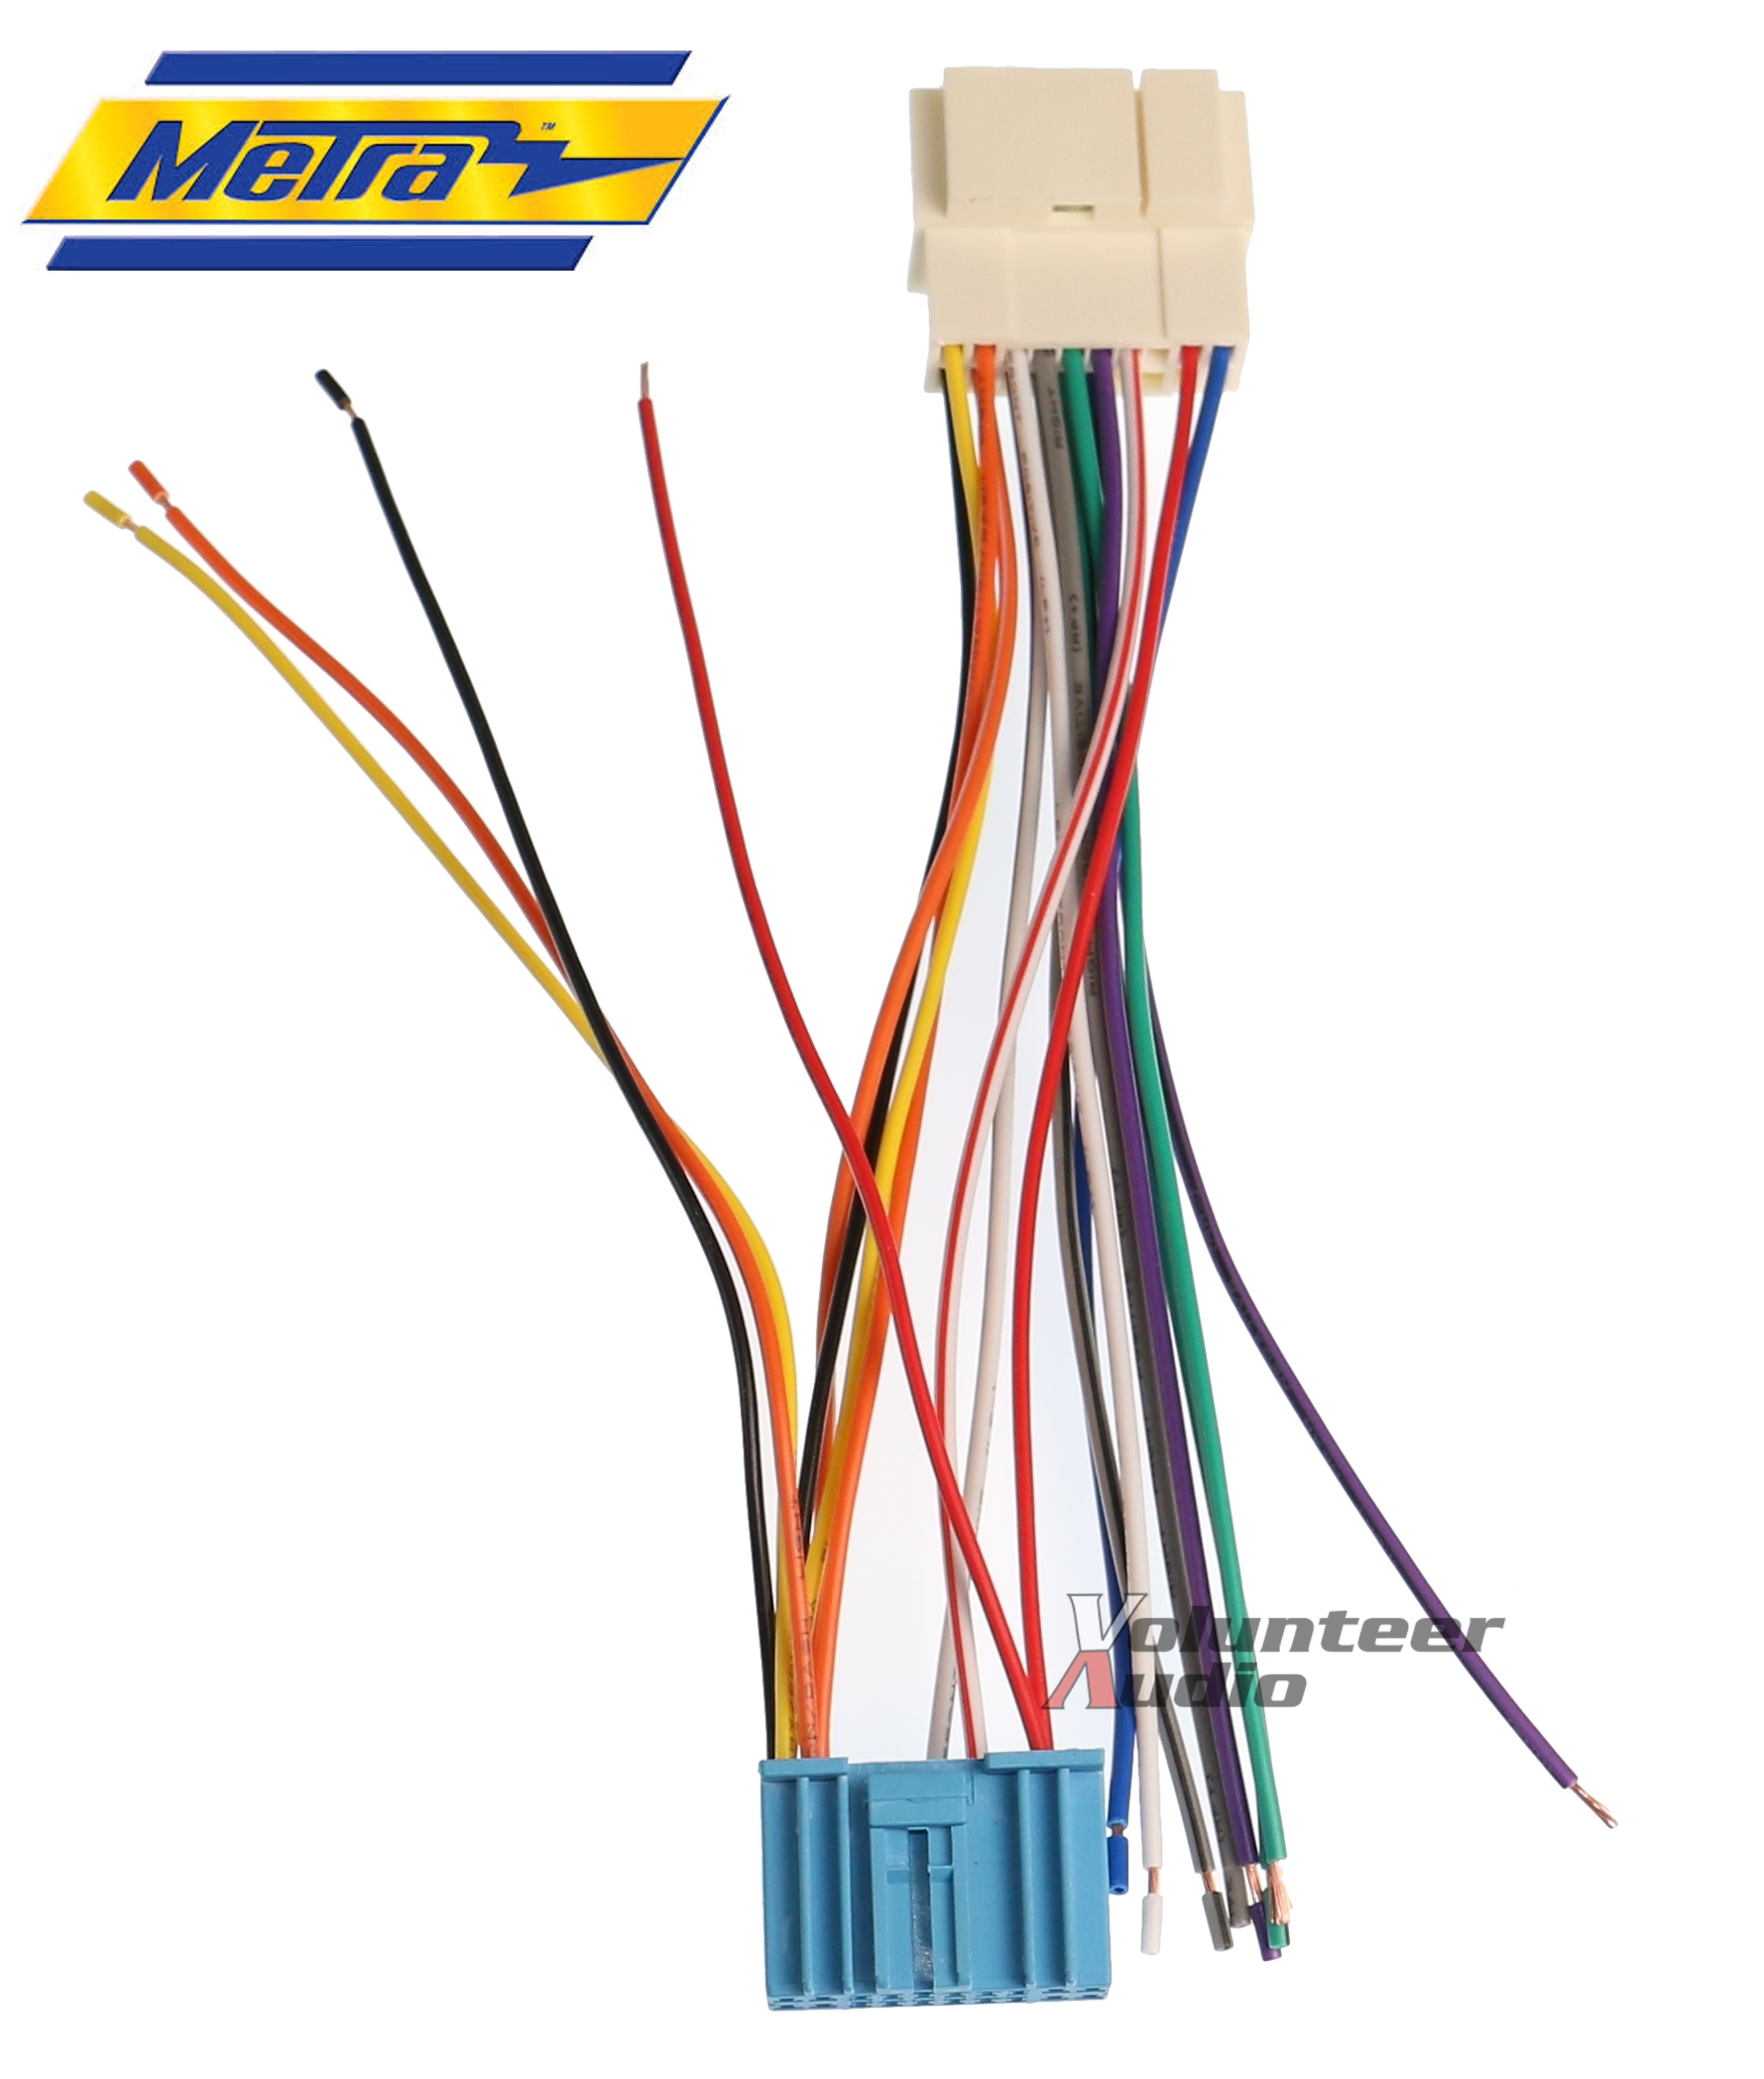 sony cdx fw570 wiring diagram sony get free image about wiring diagram